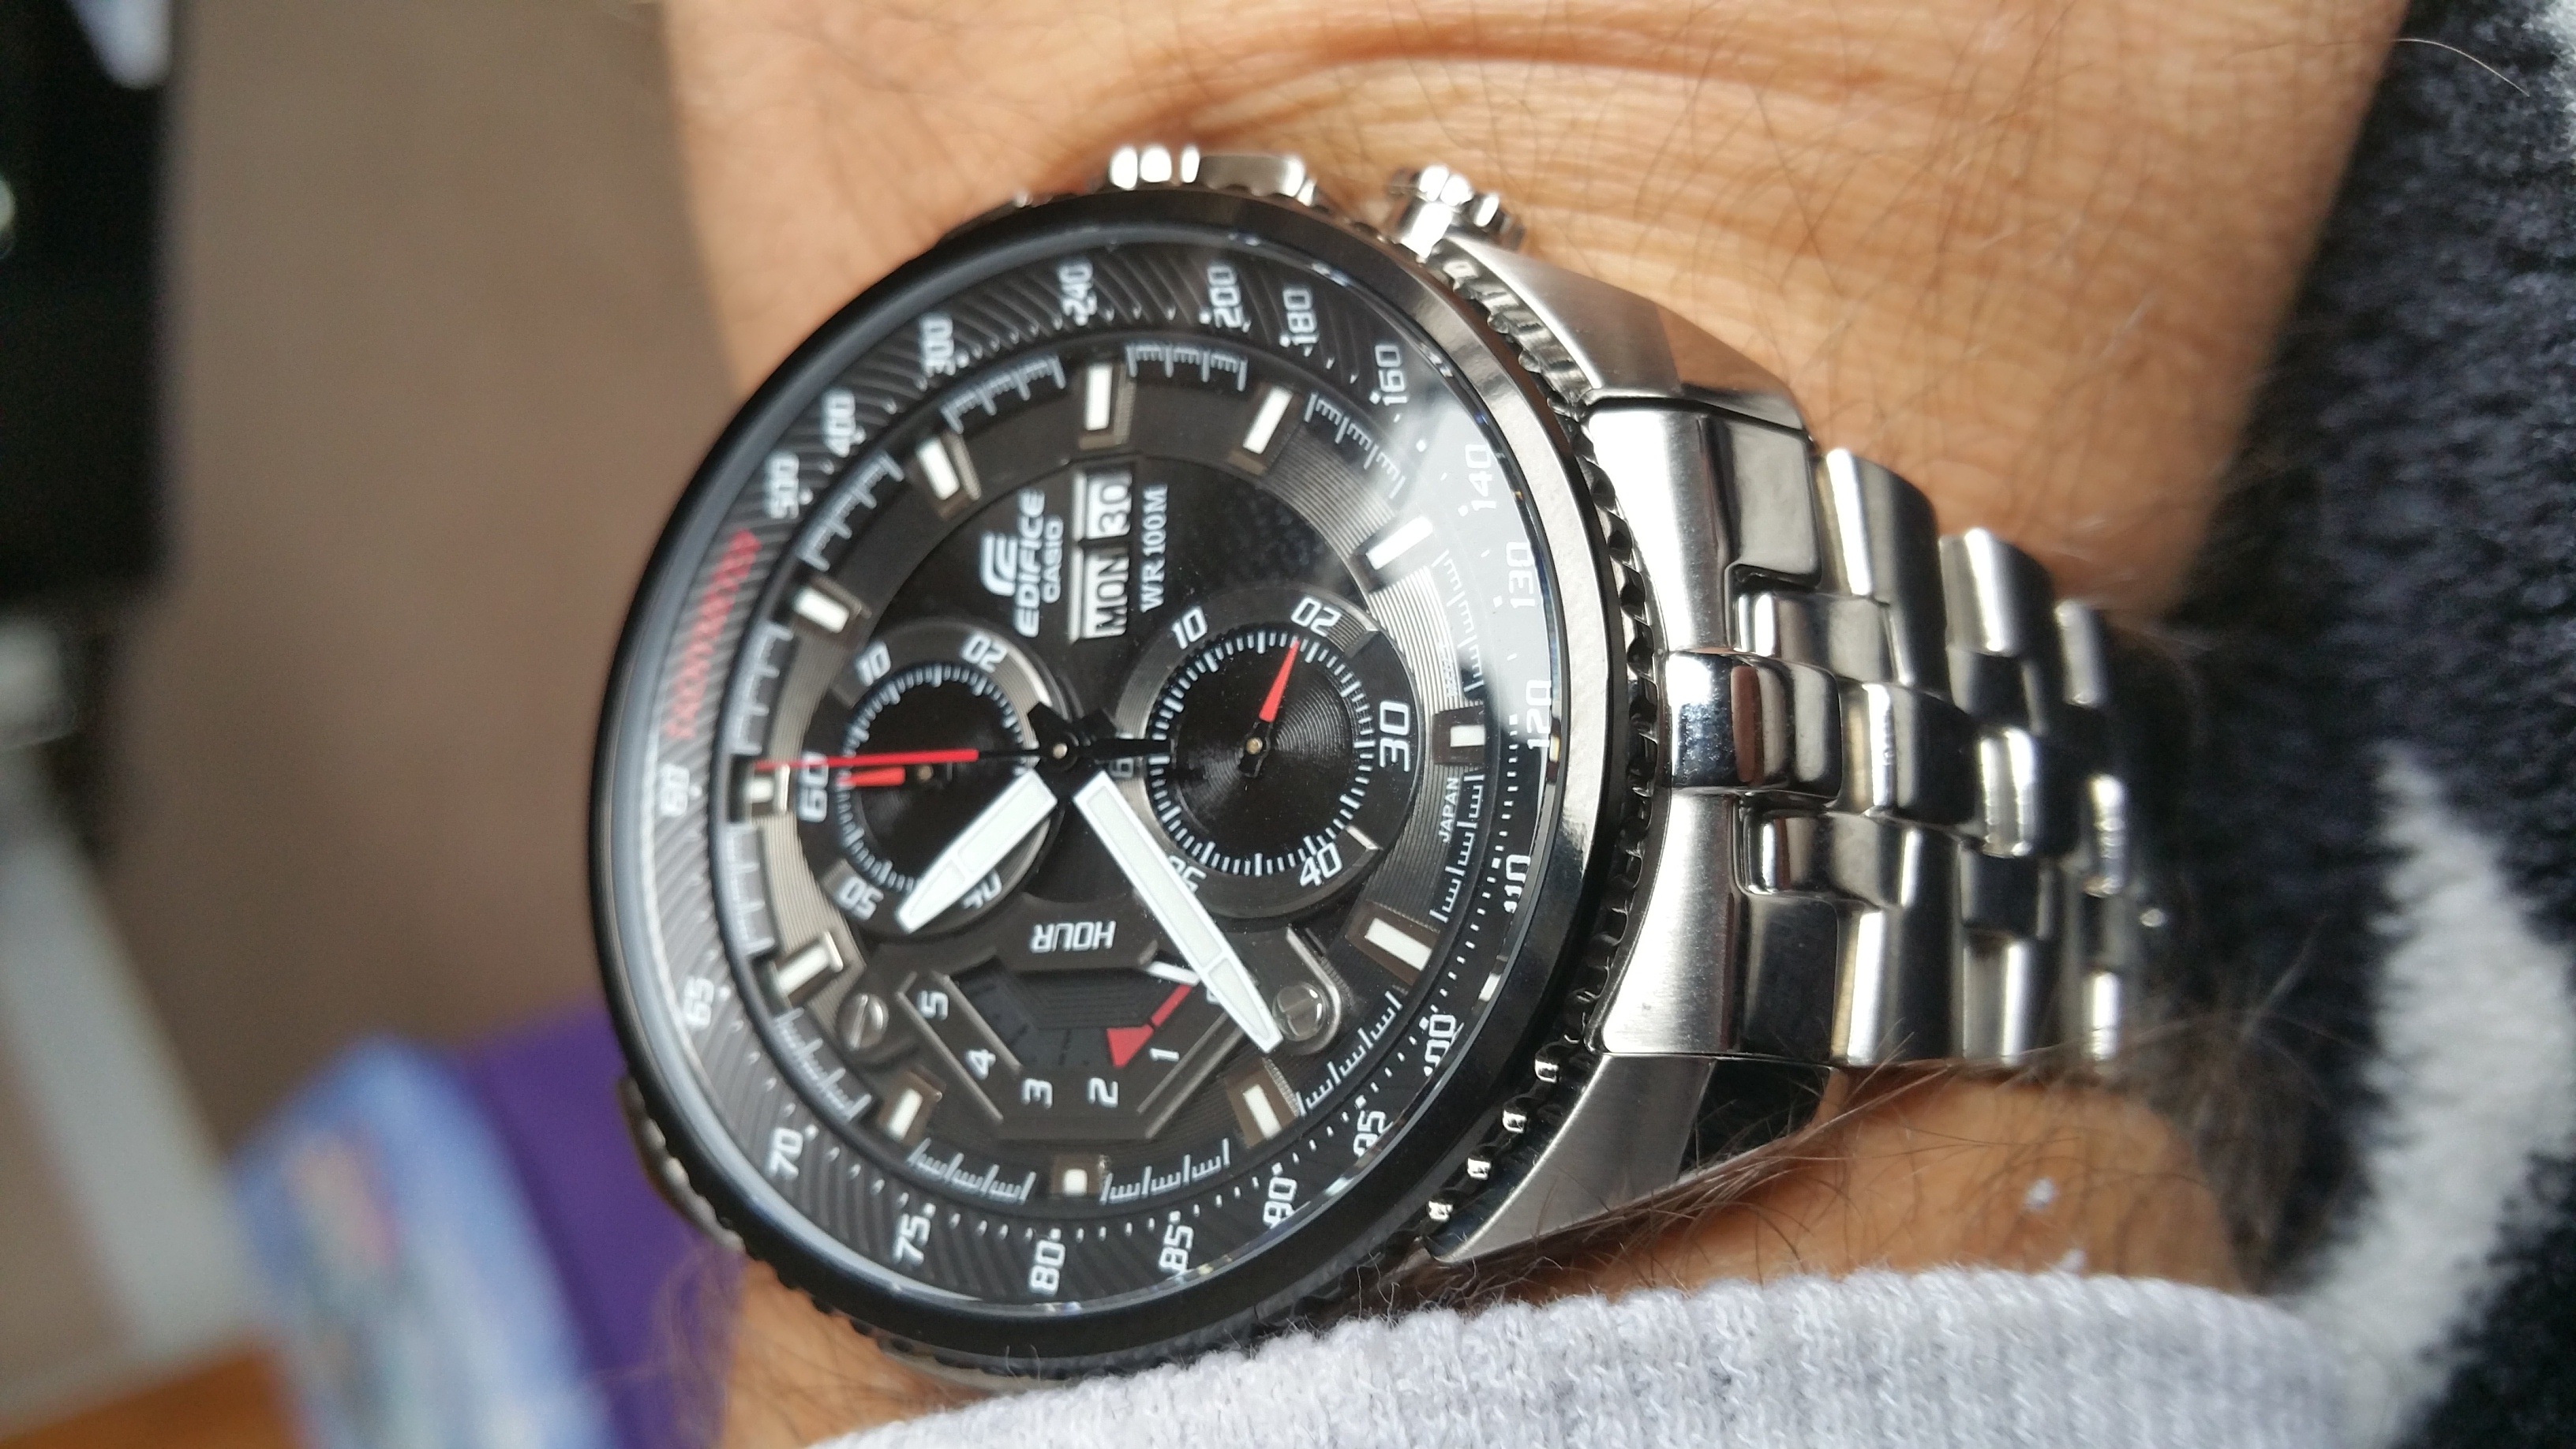 7268cddd1 Gents Casio Edifice Chronograph Watch (EF-558D-1AVEF) | WatchShop.com™